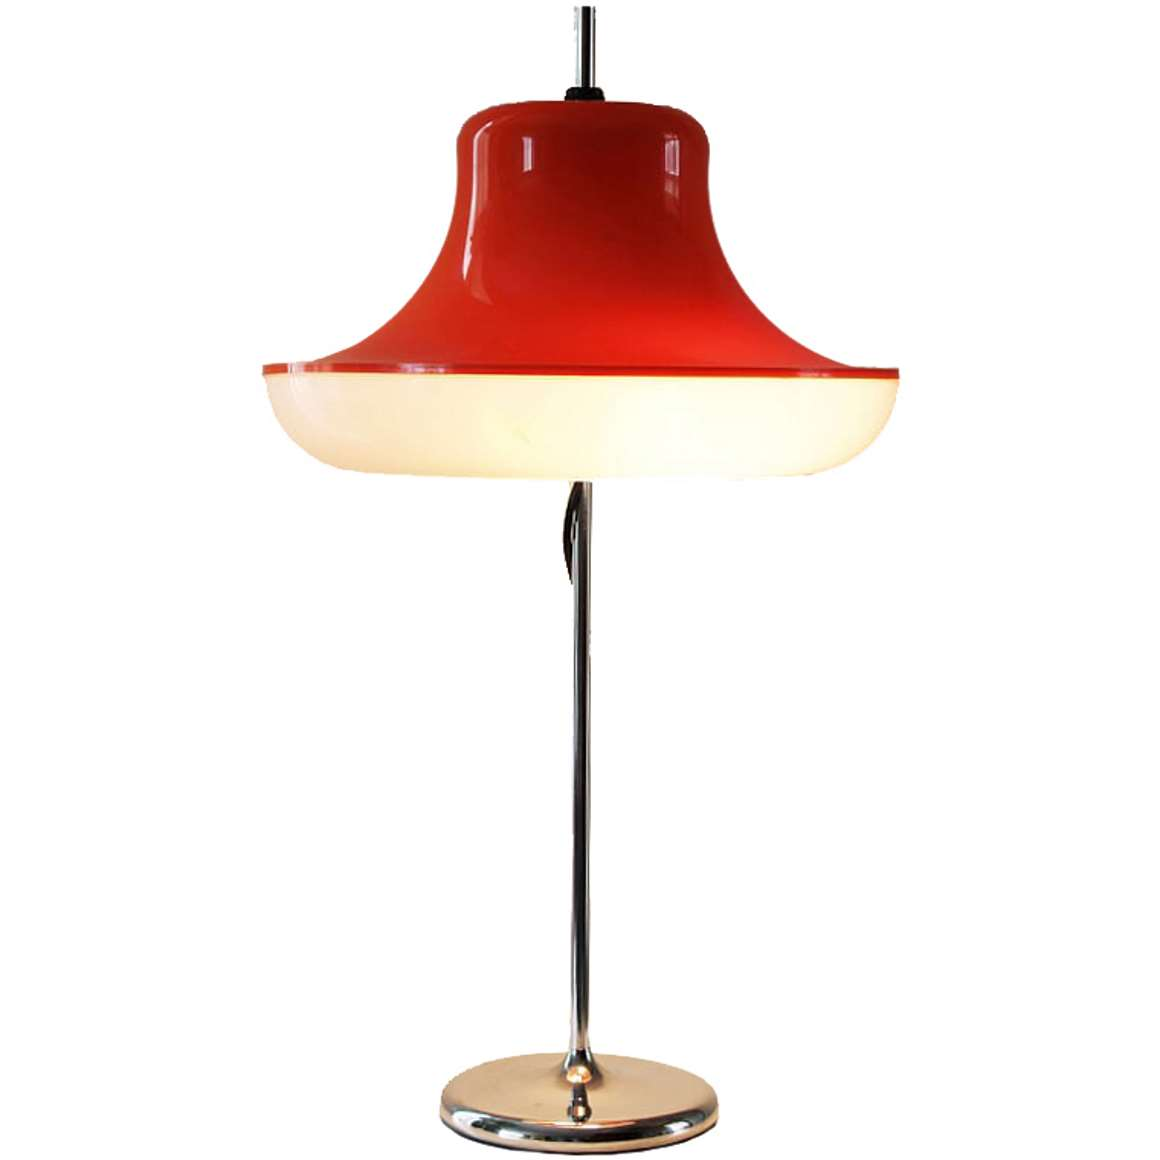 Wila 1960s Table Lamp